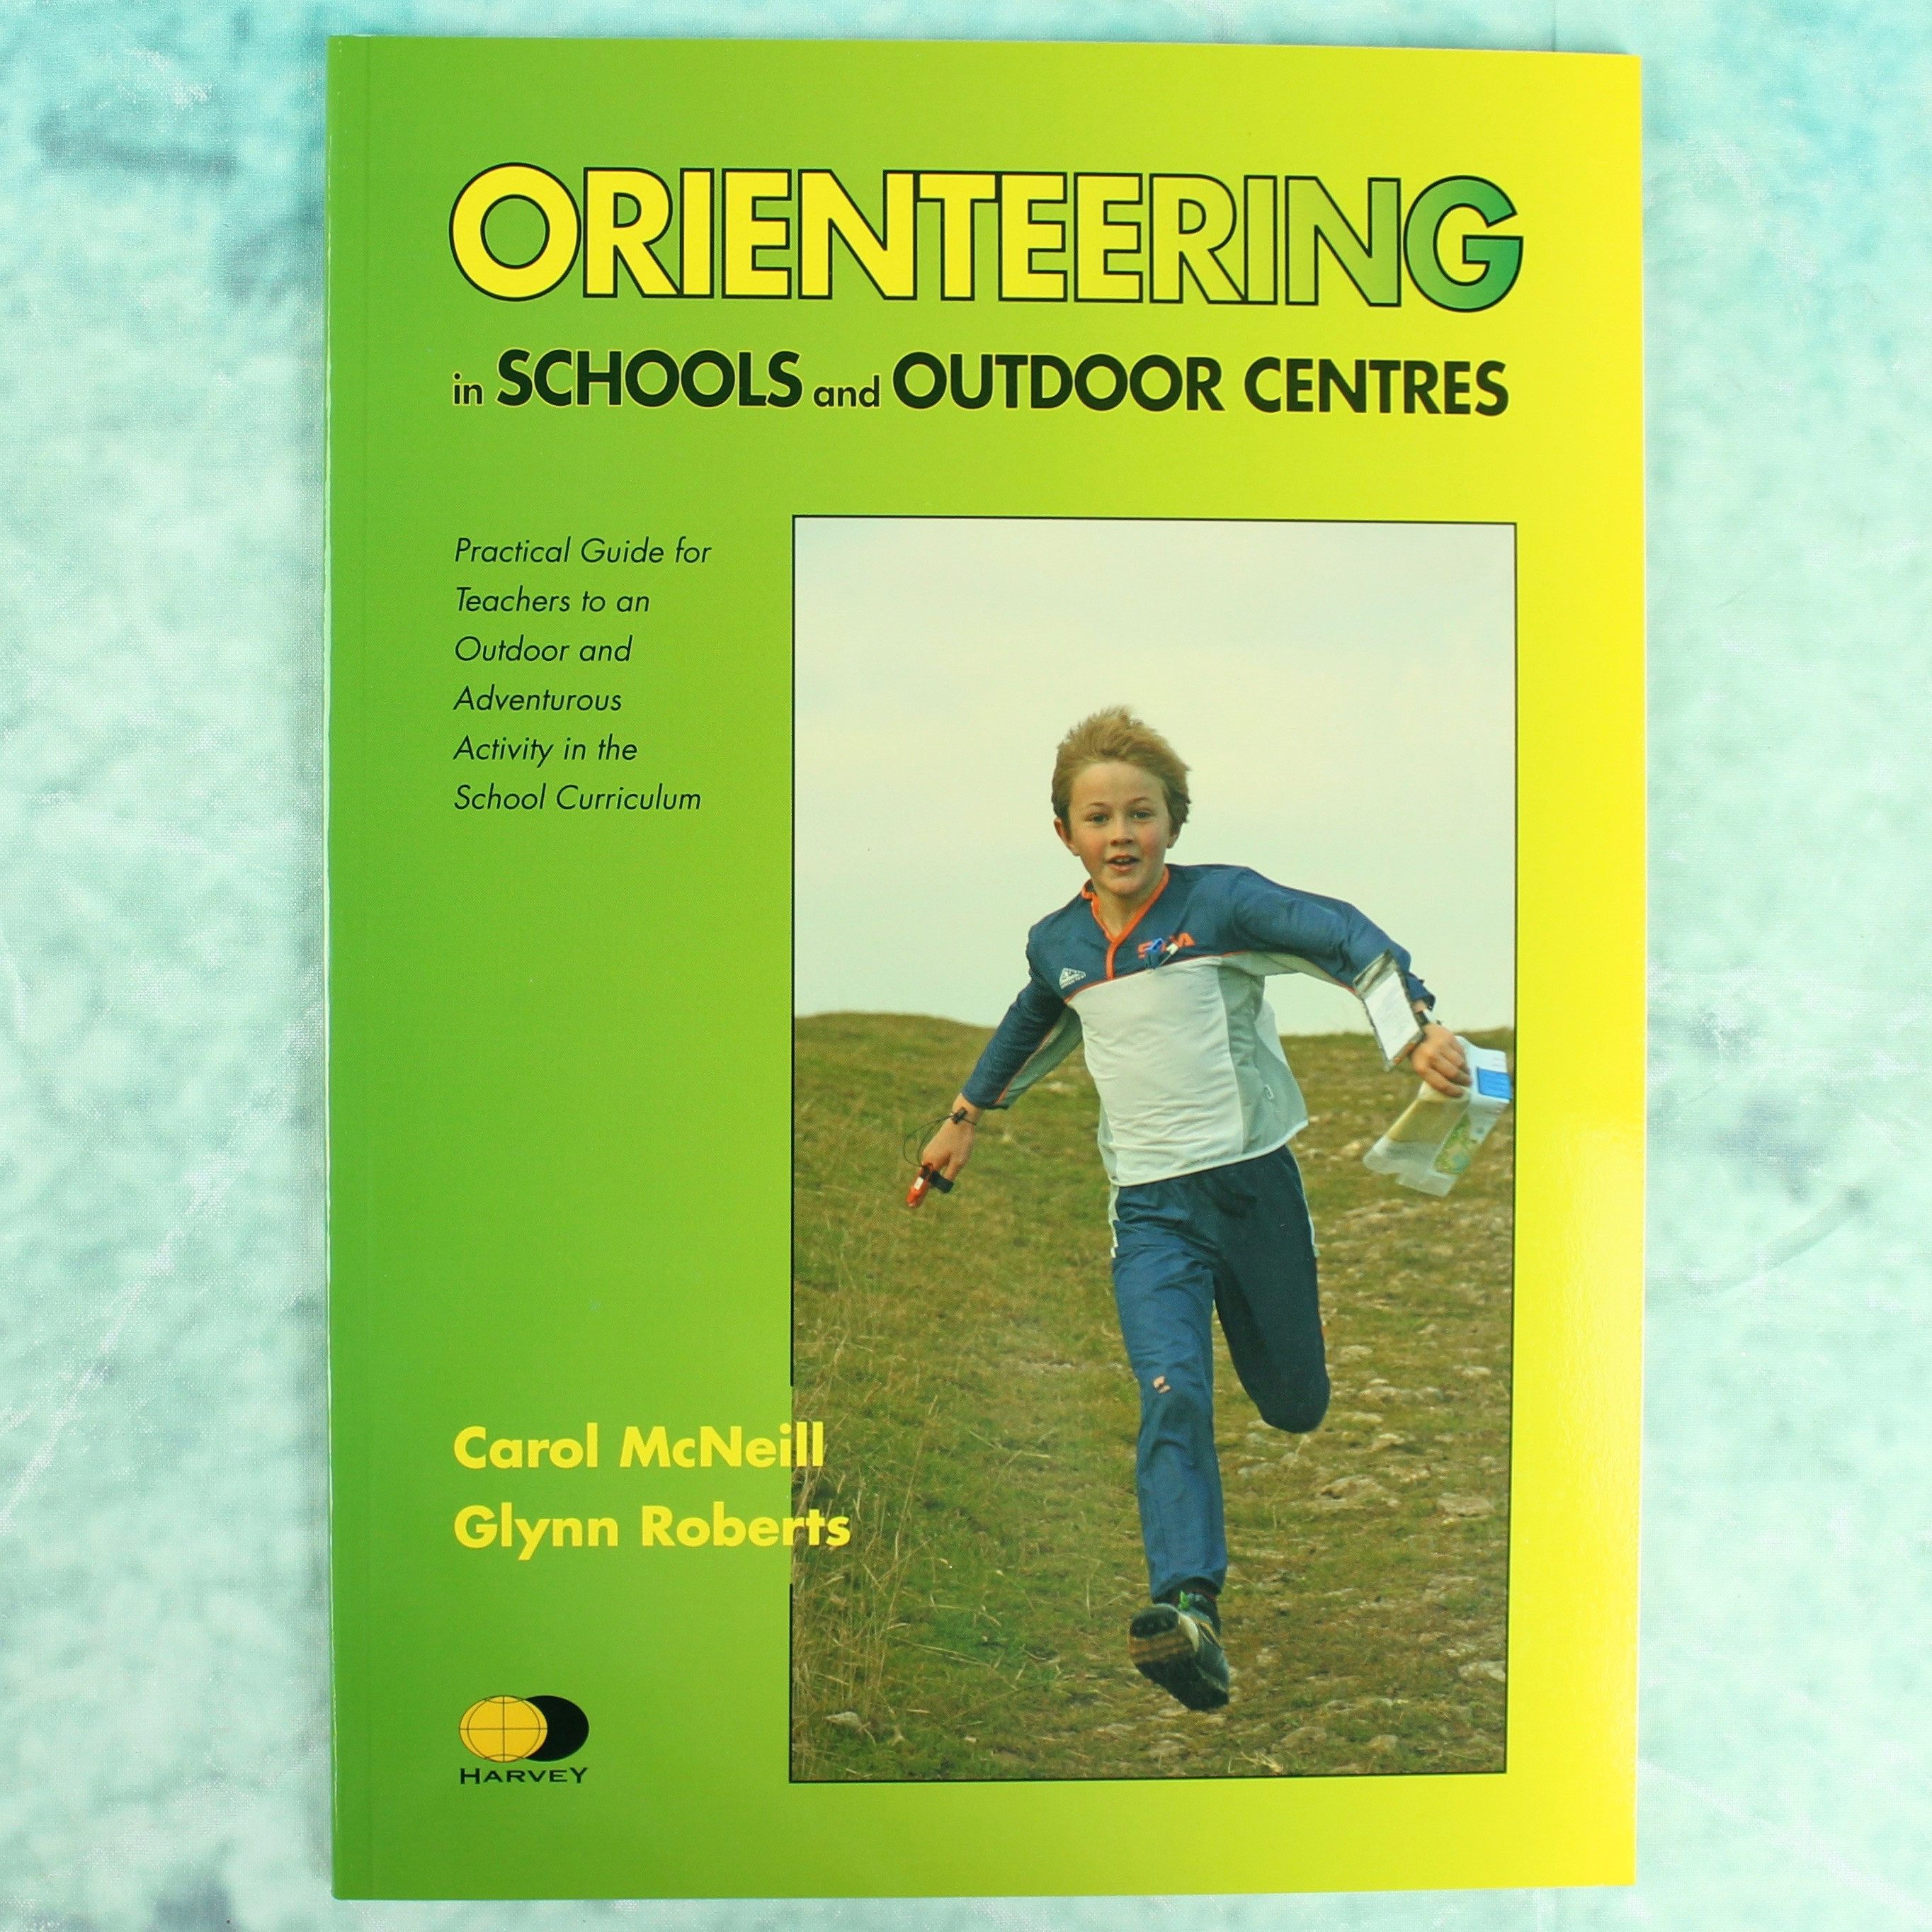 Orienteering navigation books & maps - Outdoor Library